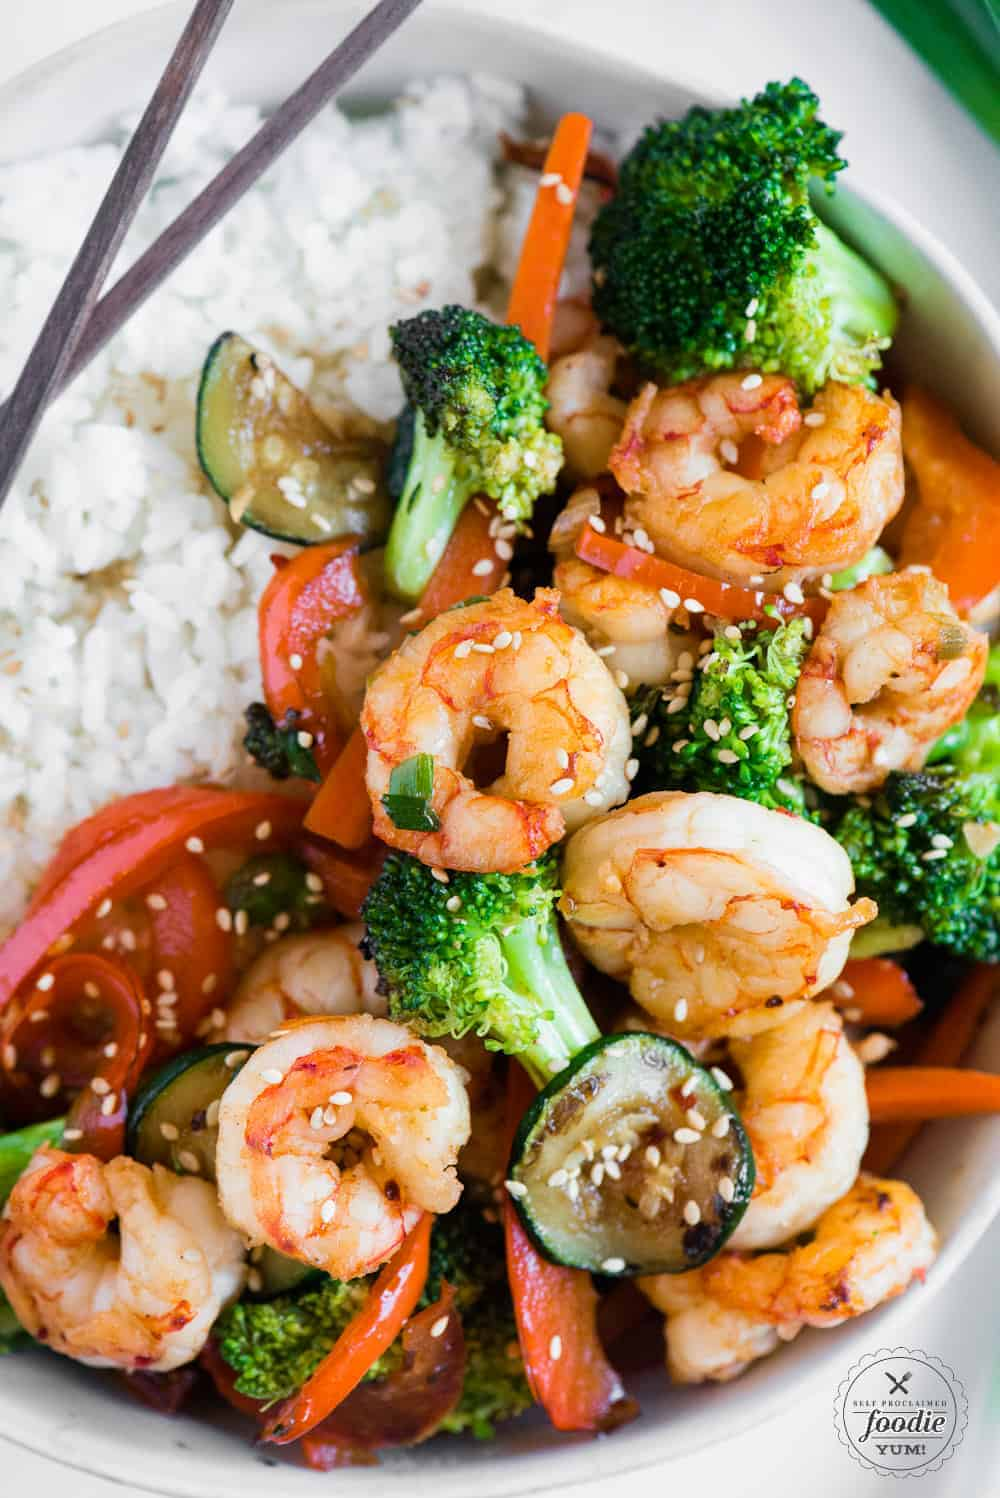 healthy bowl of shrimp stir fry with sauce and rice